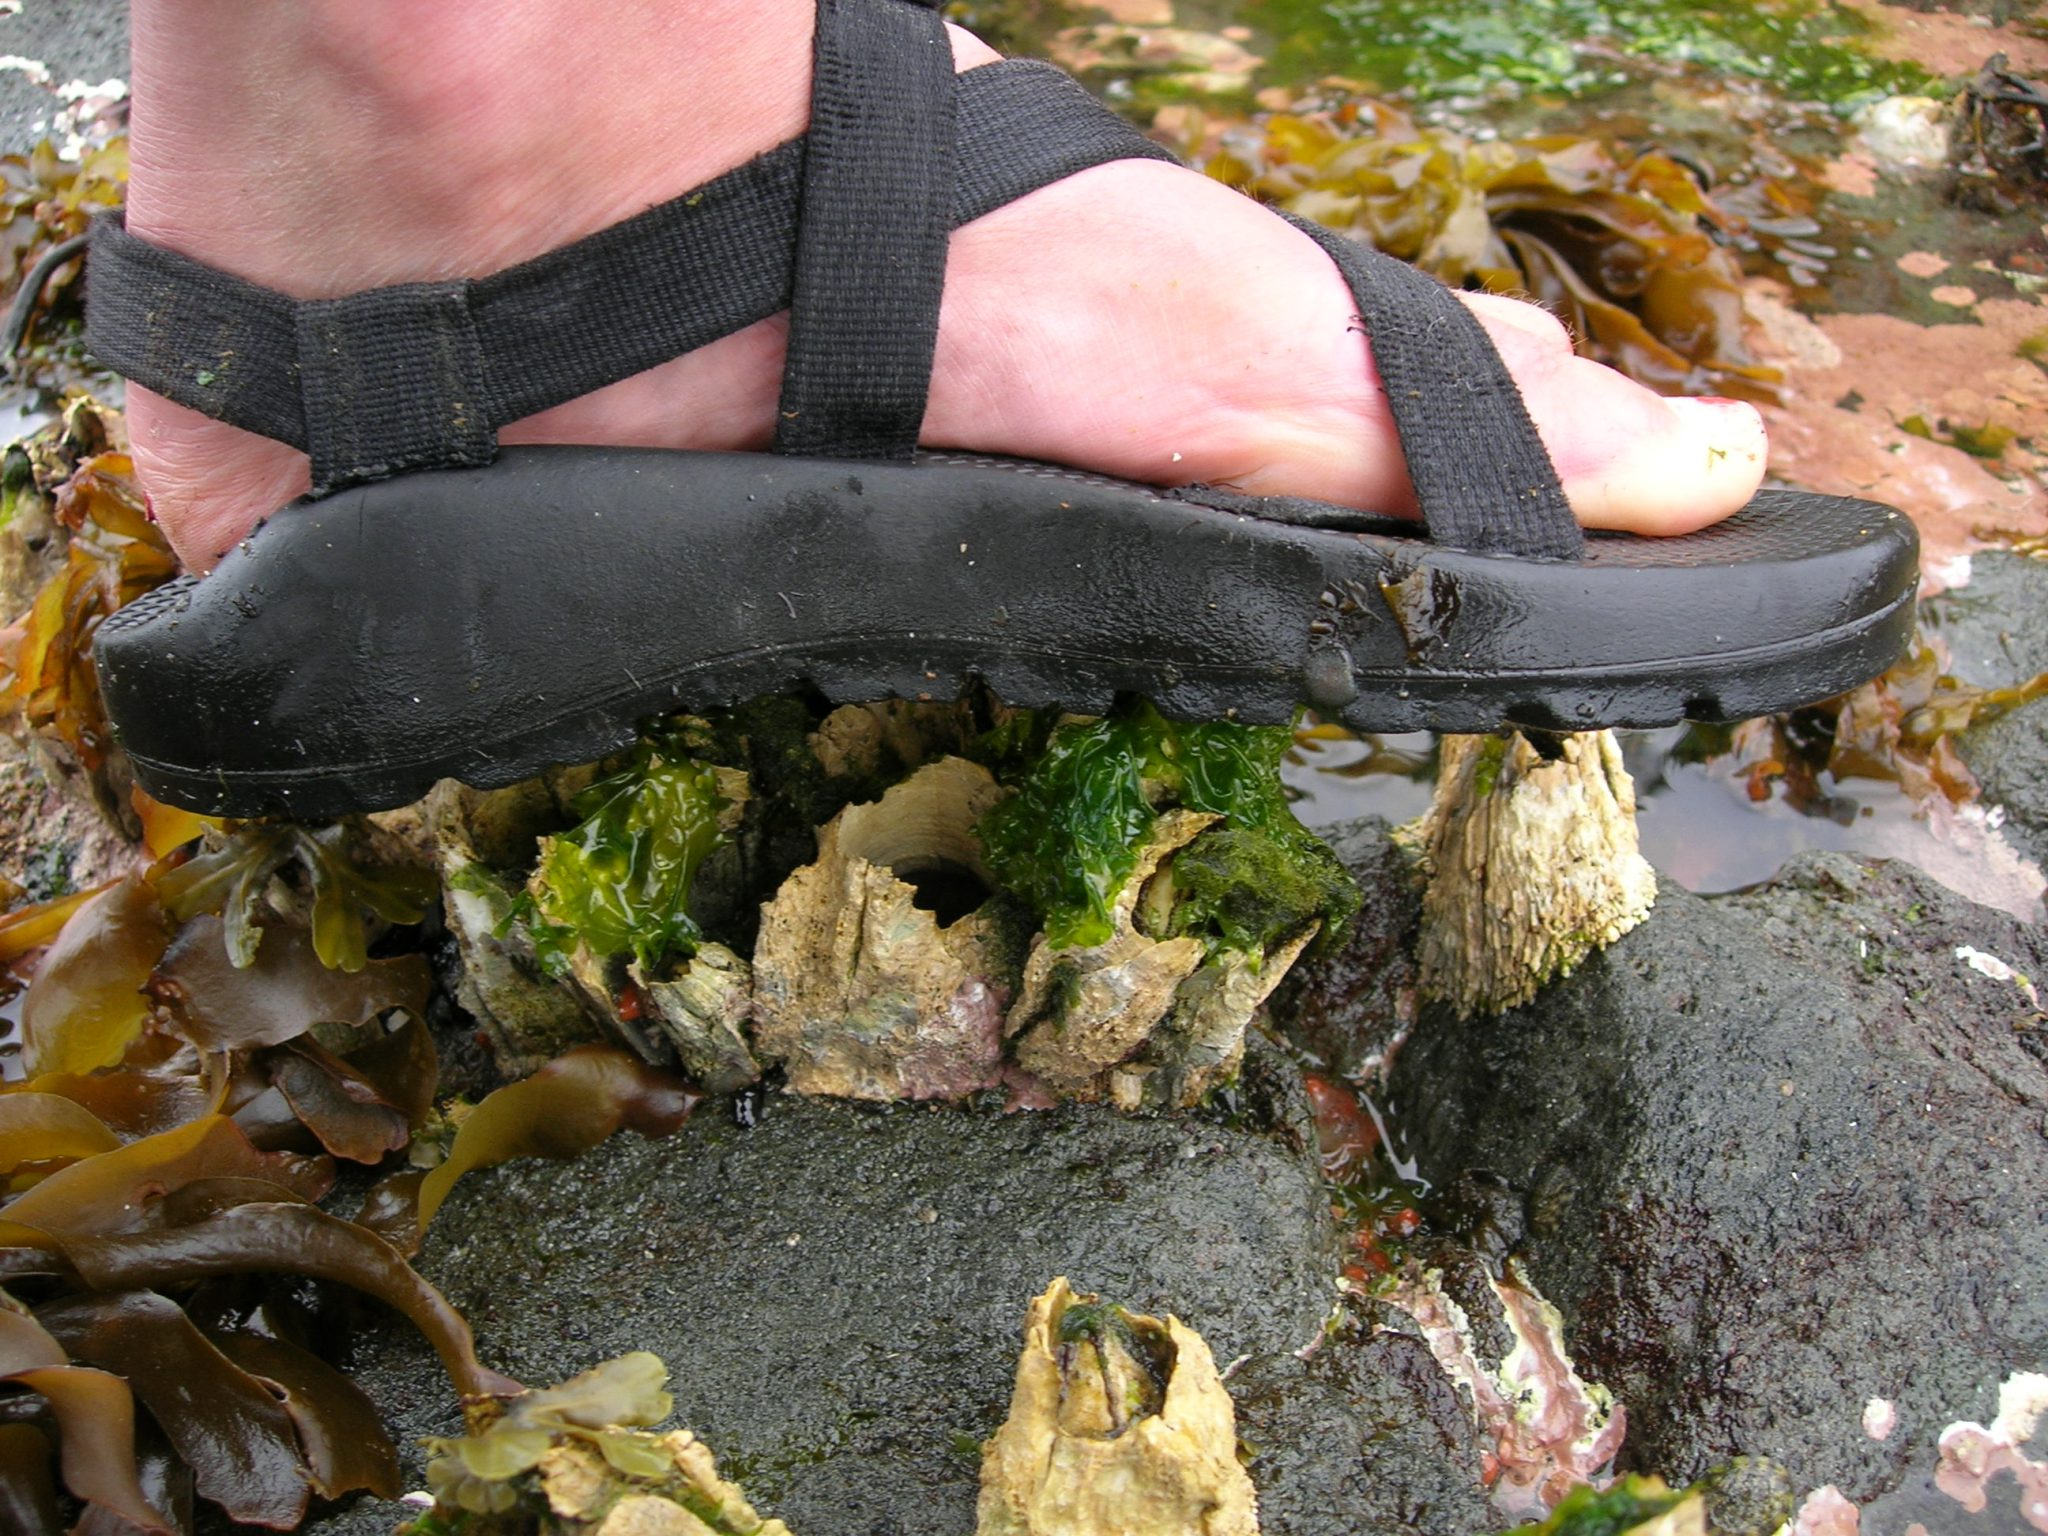 Footwear for Sea Kayaking & Whitewater Rafting: A Solution That Works for Me